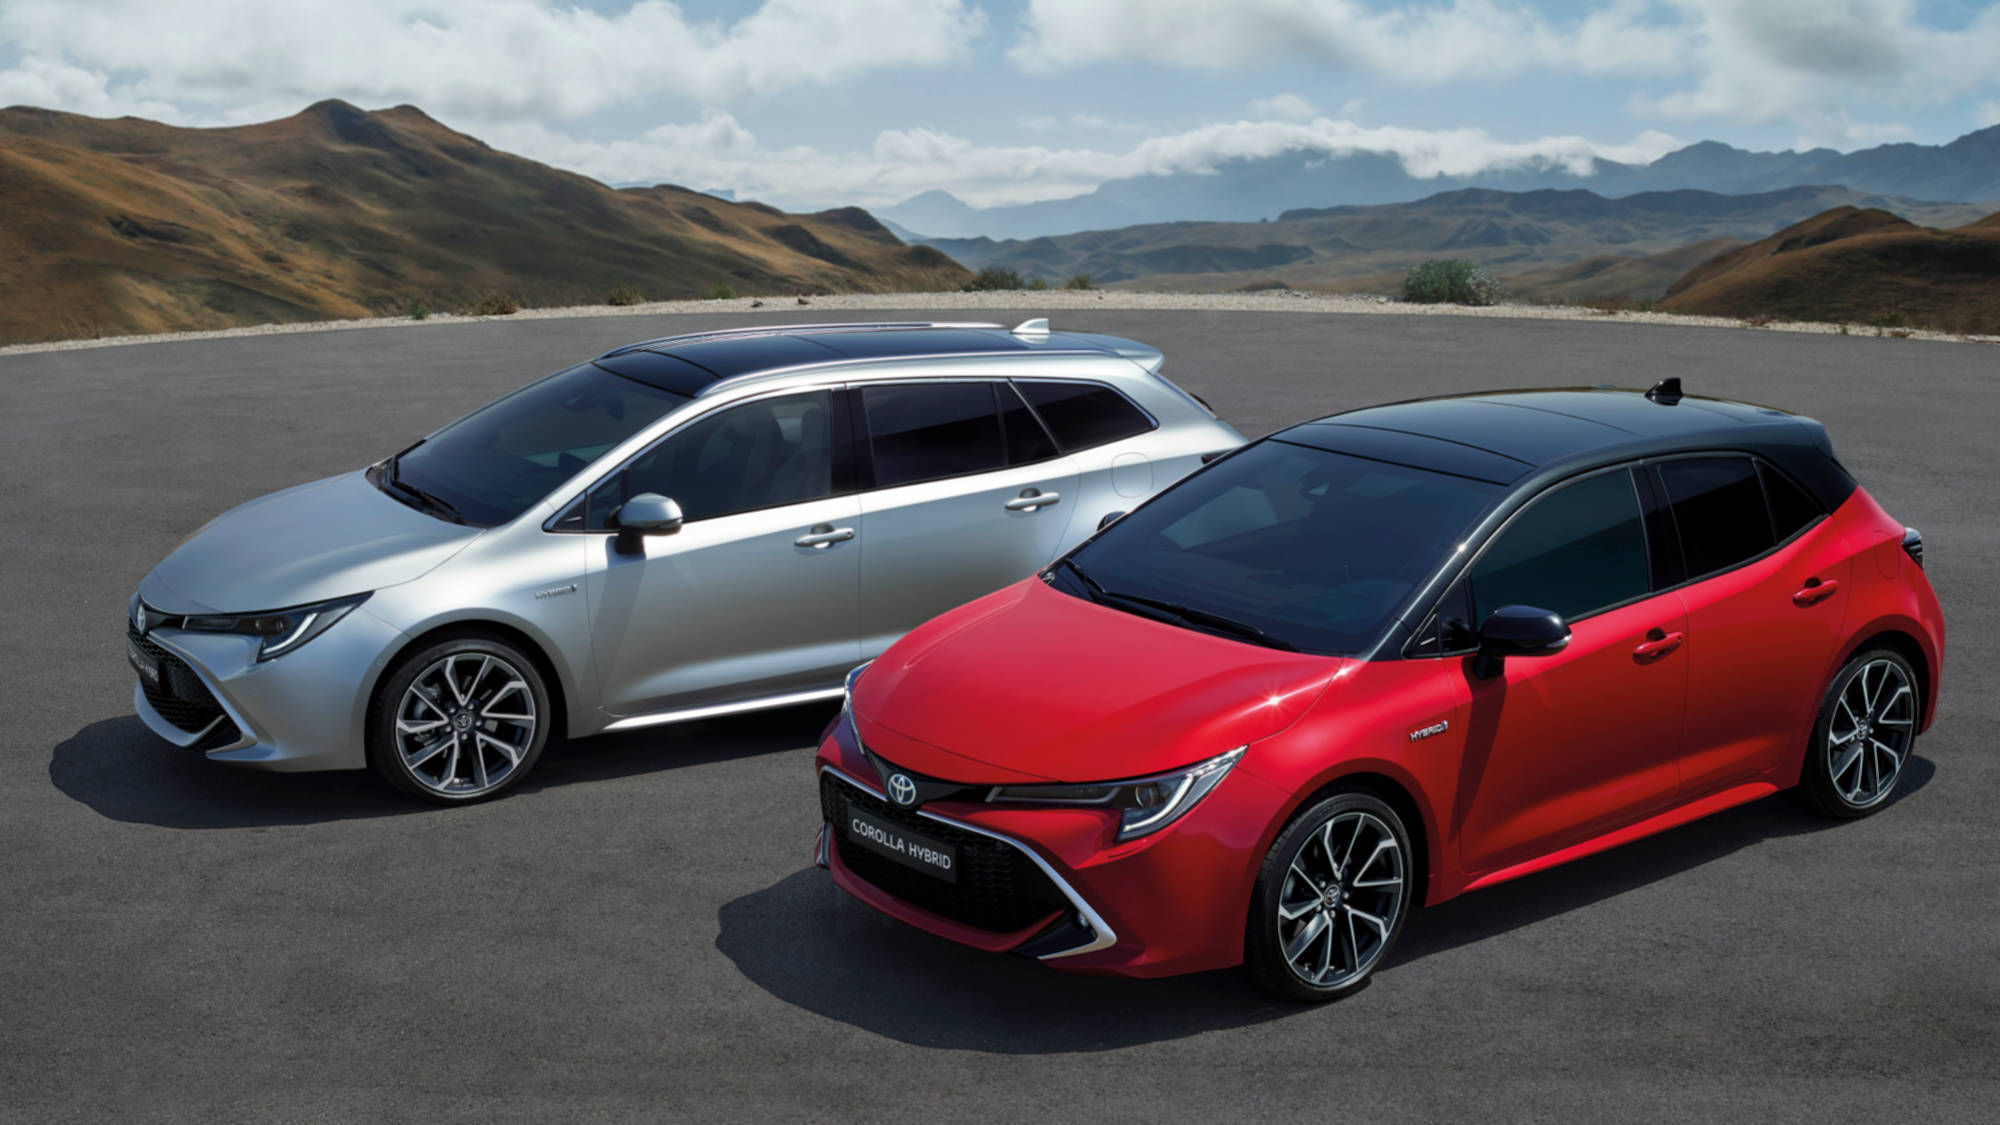 New Toyota Corolla Debuts With Two Flavors at Paris Motor Show 9